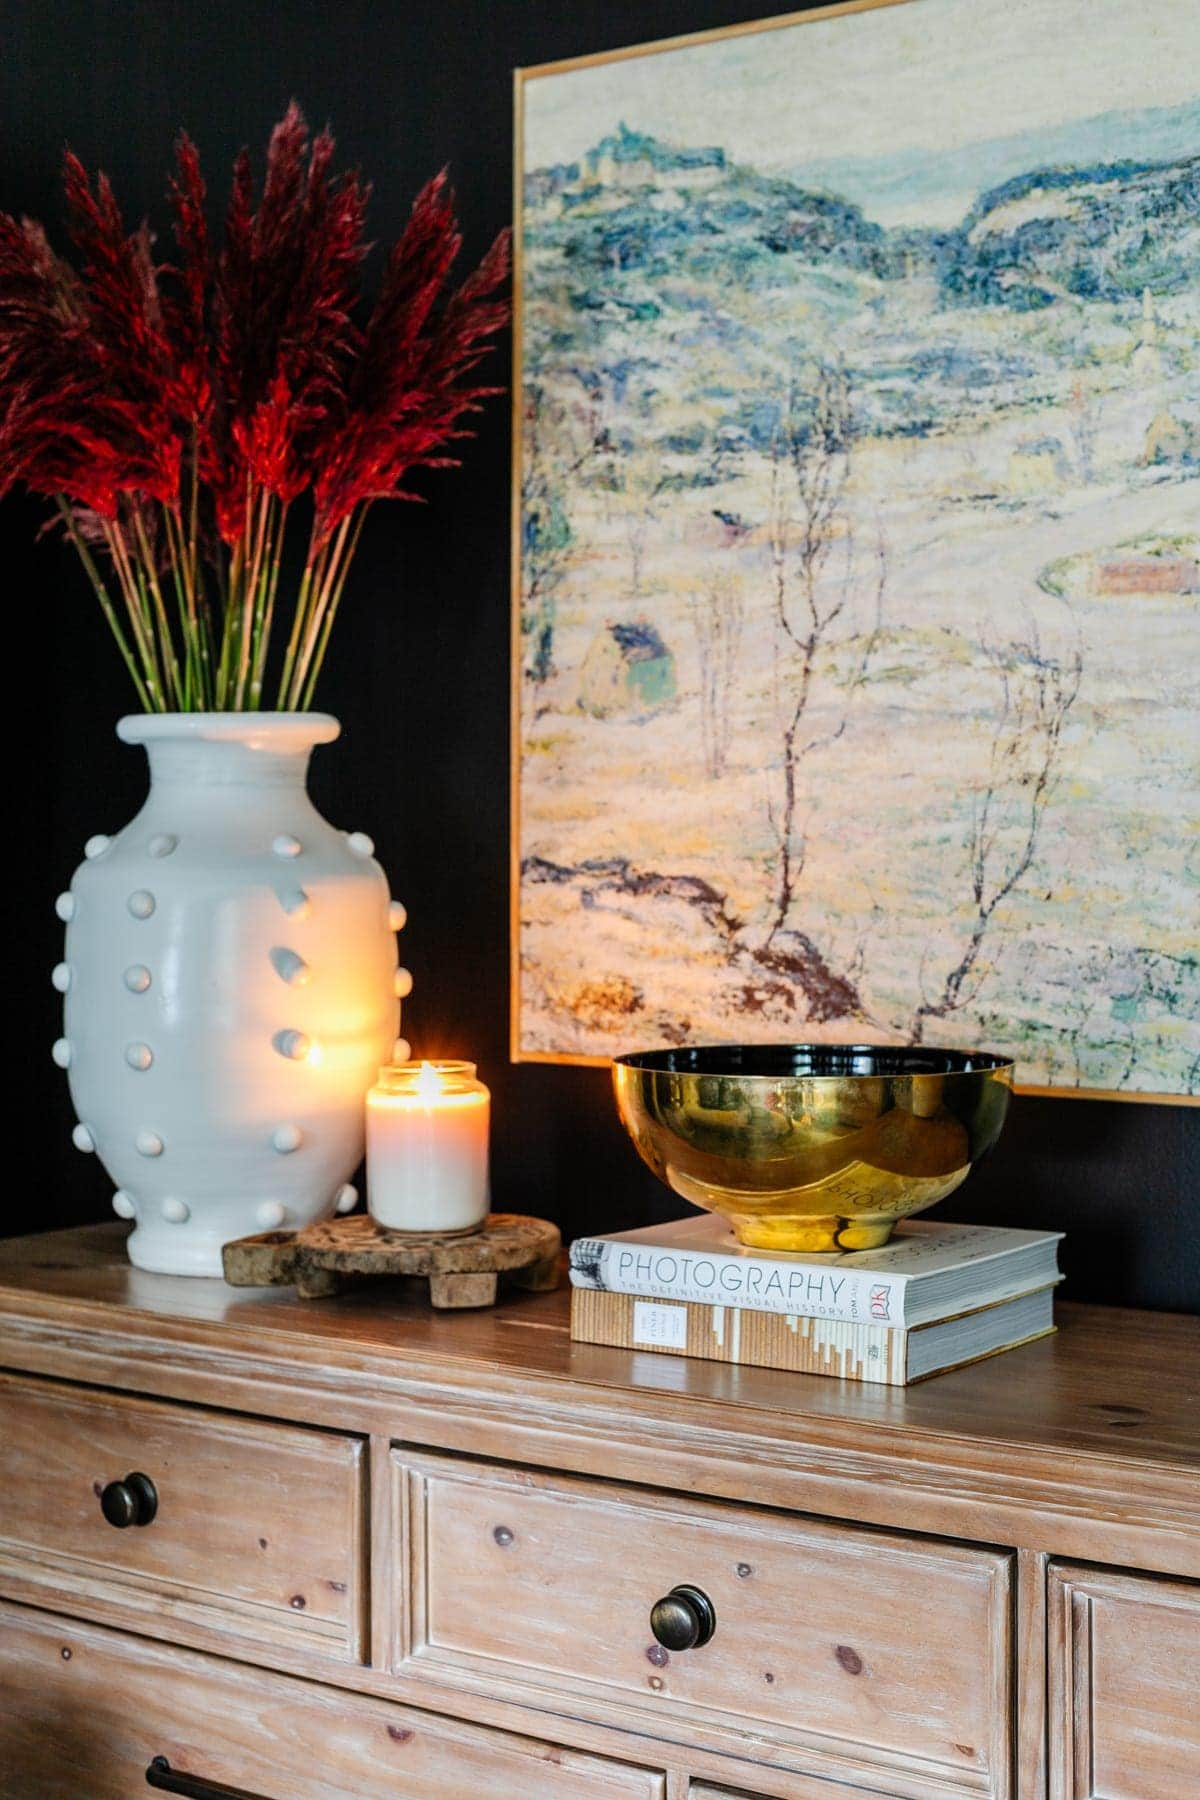 coffee table books styled on a bedroom dresser